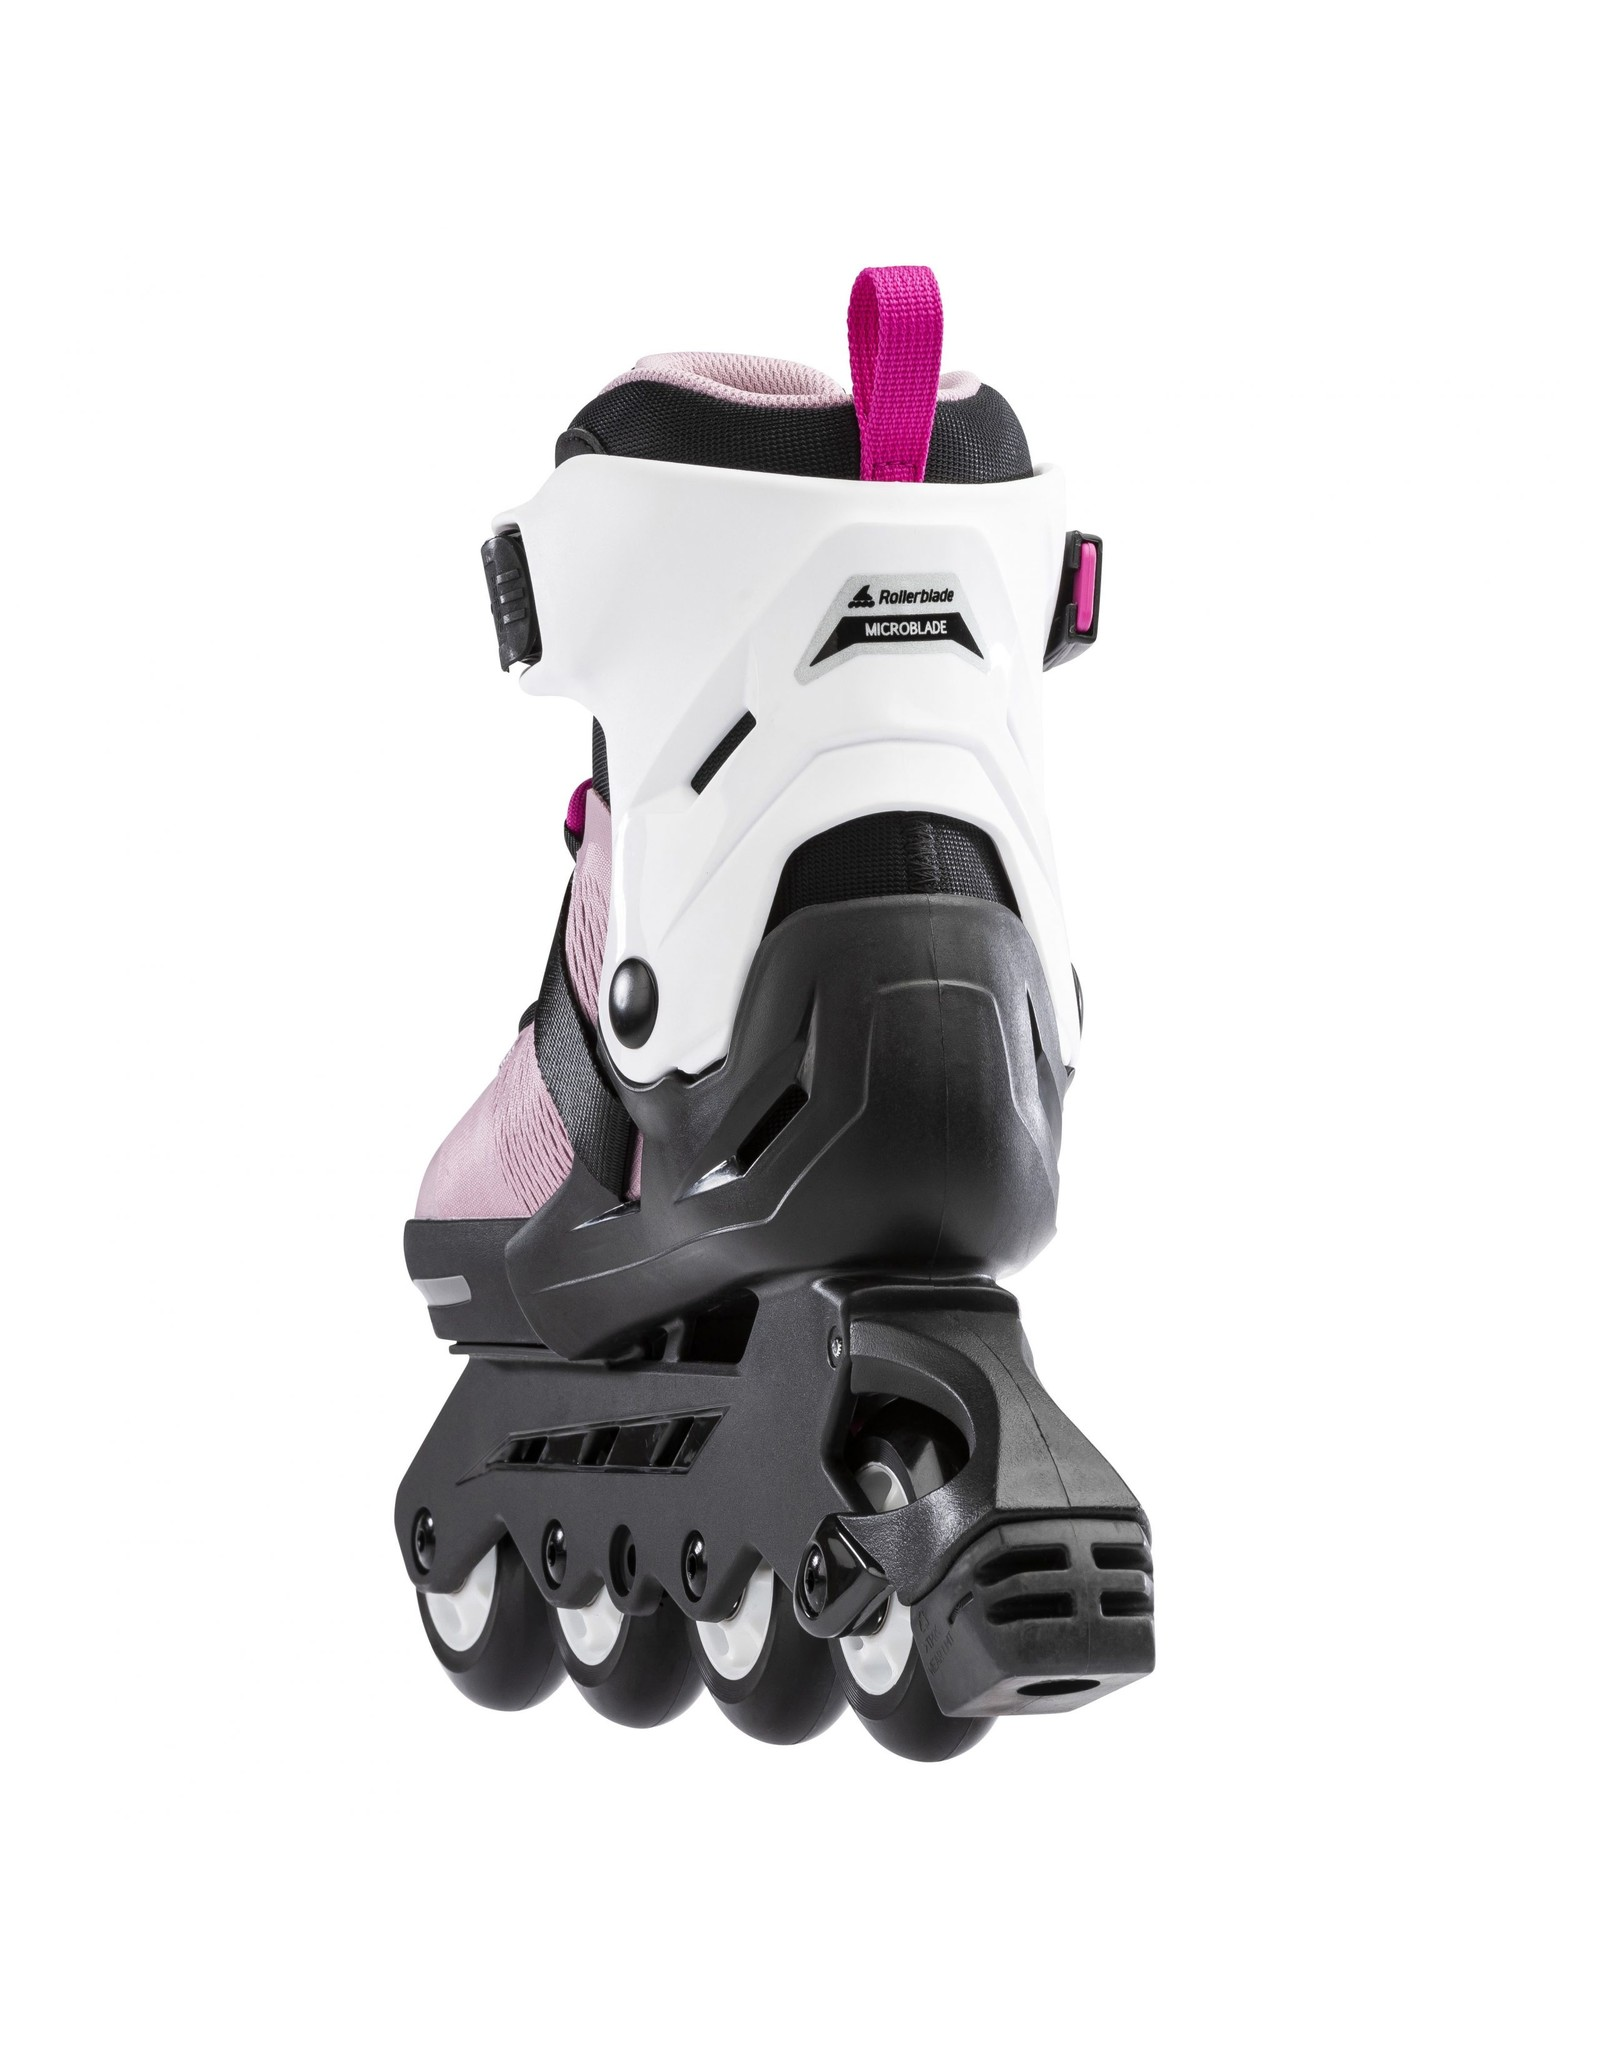 Rollerblade Microblade G